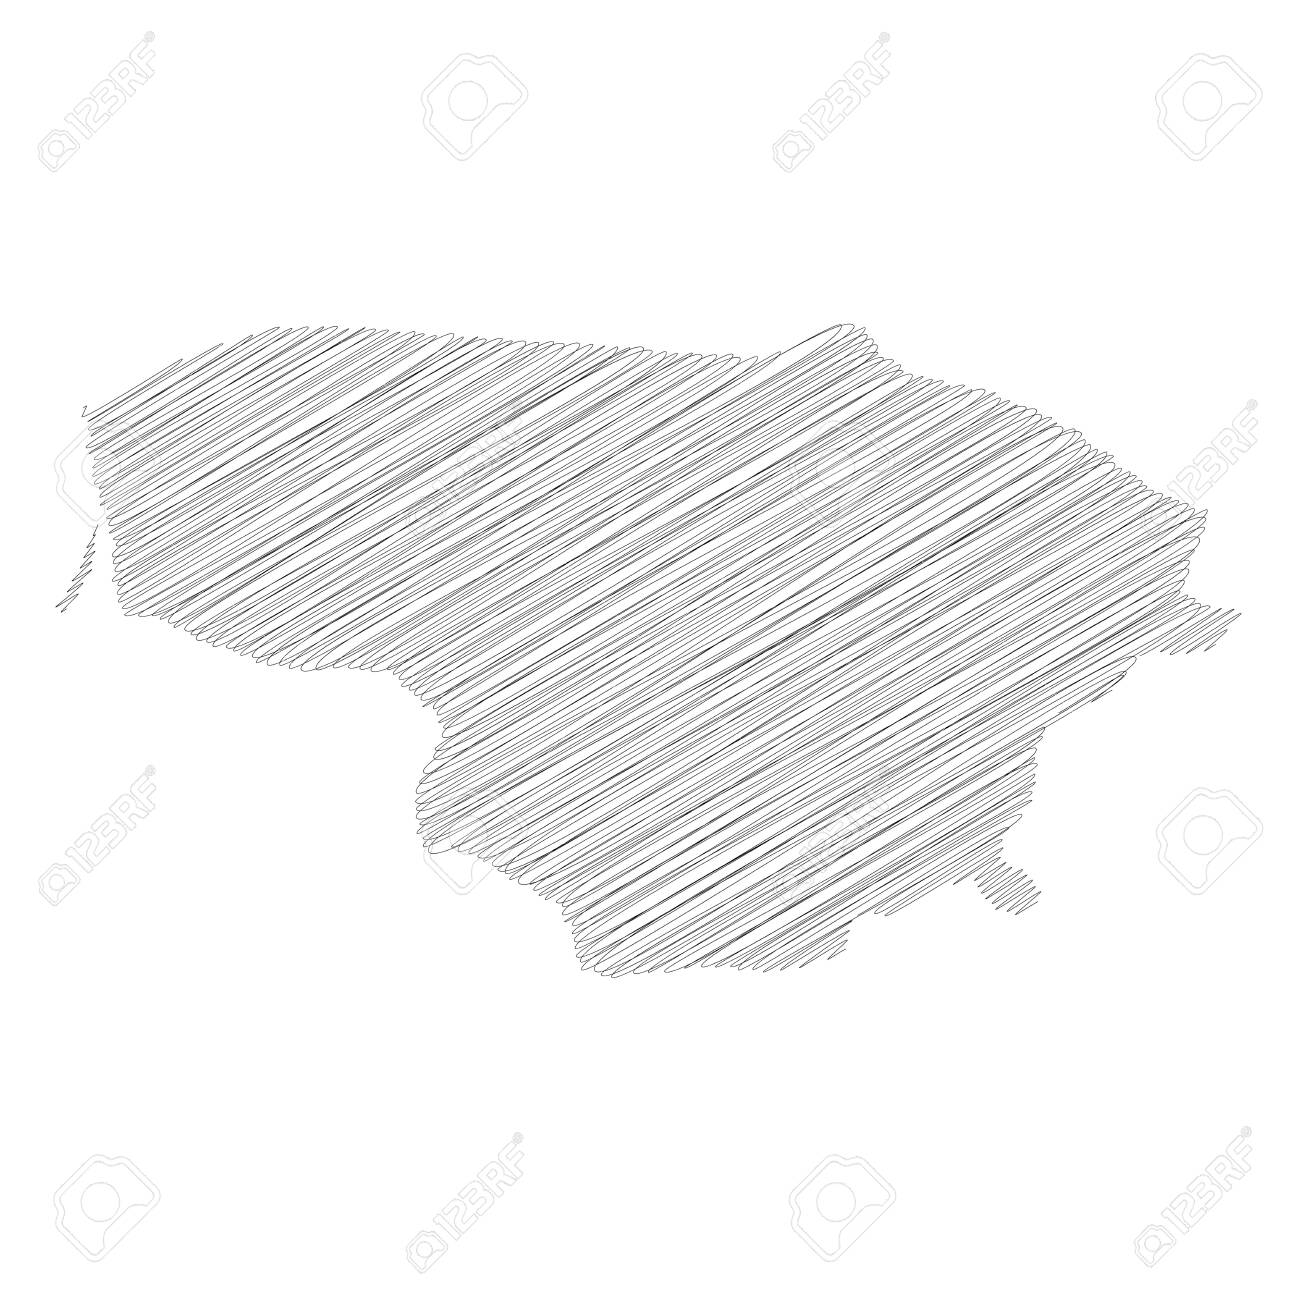 Lithuania Pencil Scribble Sketch Silhouette Map Of Country Royalty Free Cliparts Vectors And Stock Illustration Image 151493016